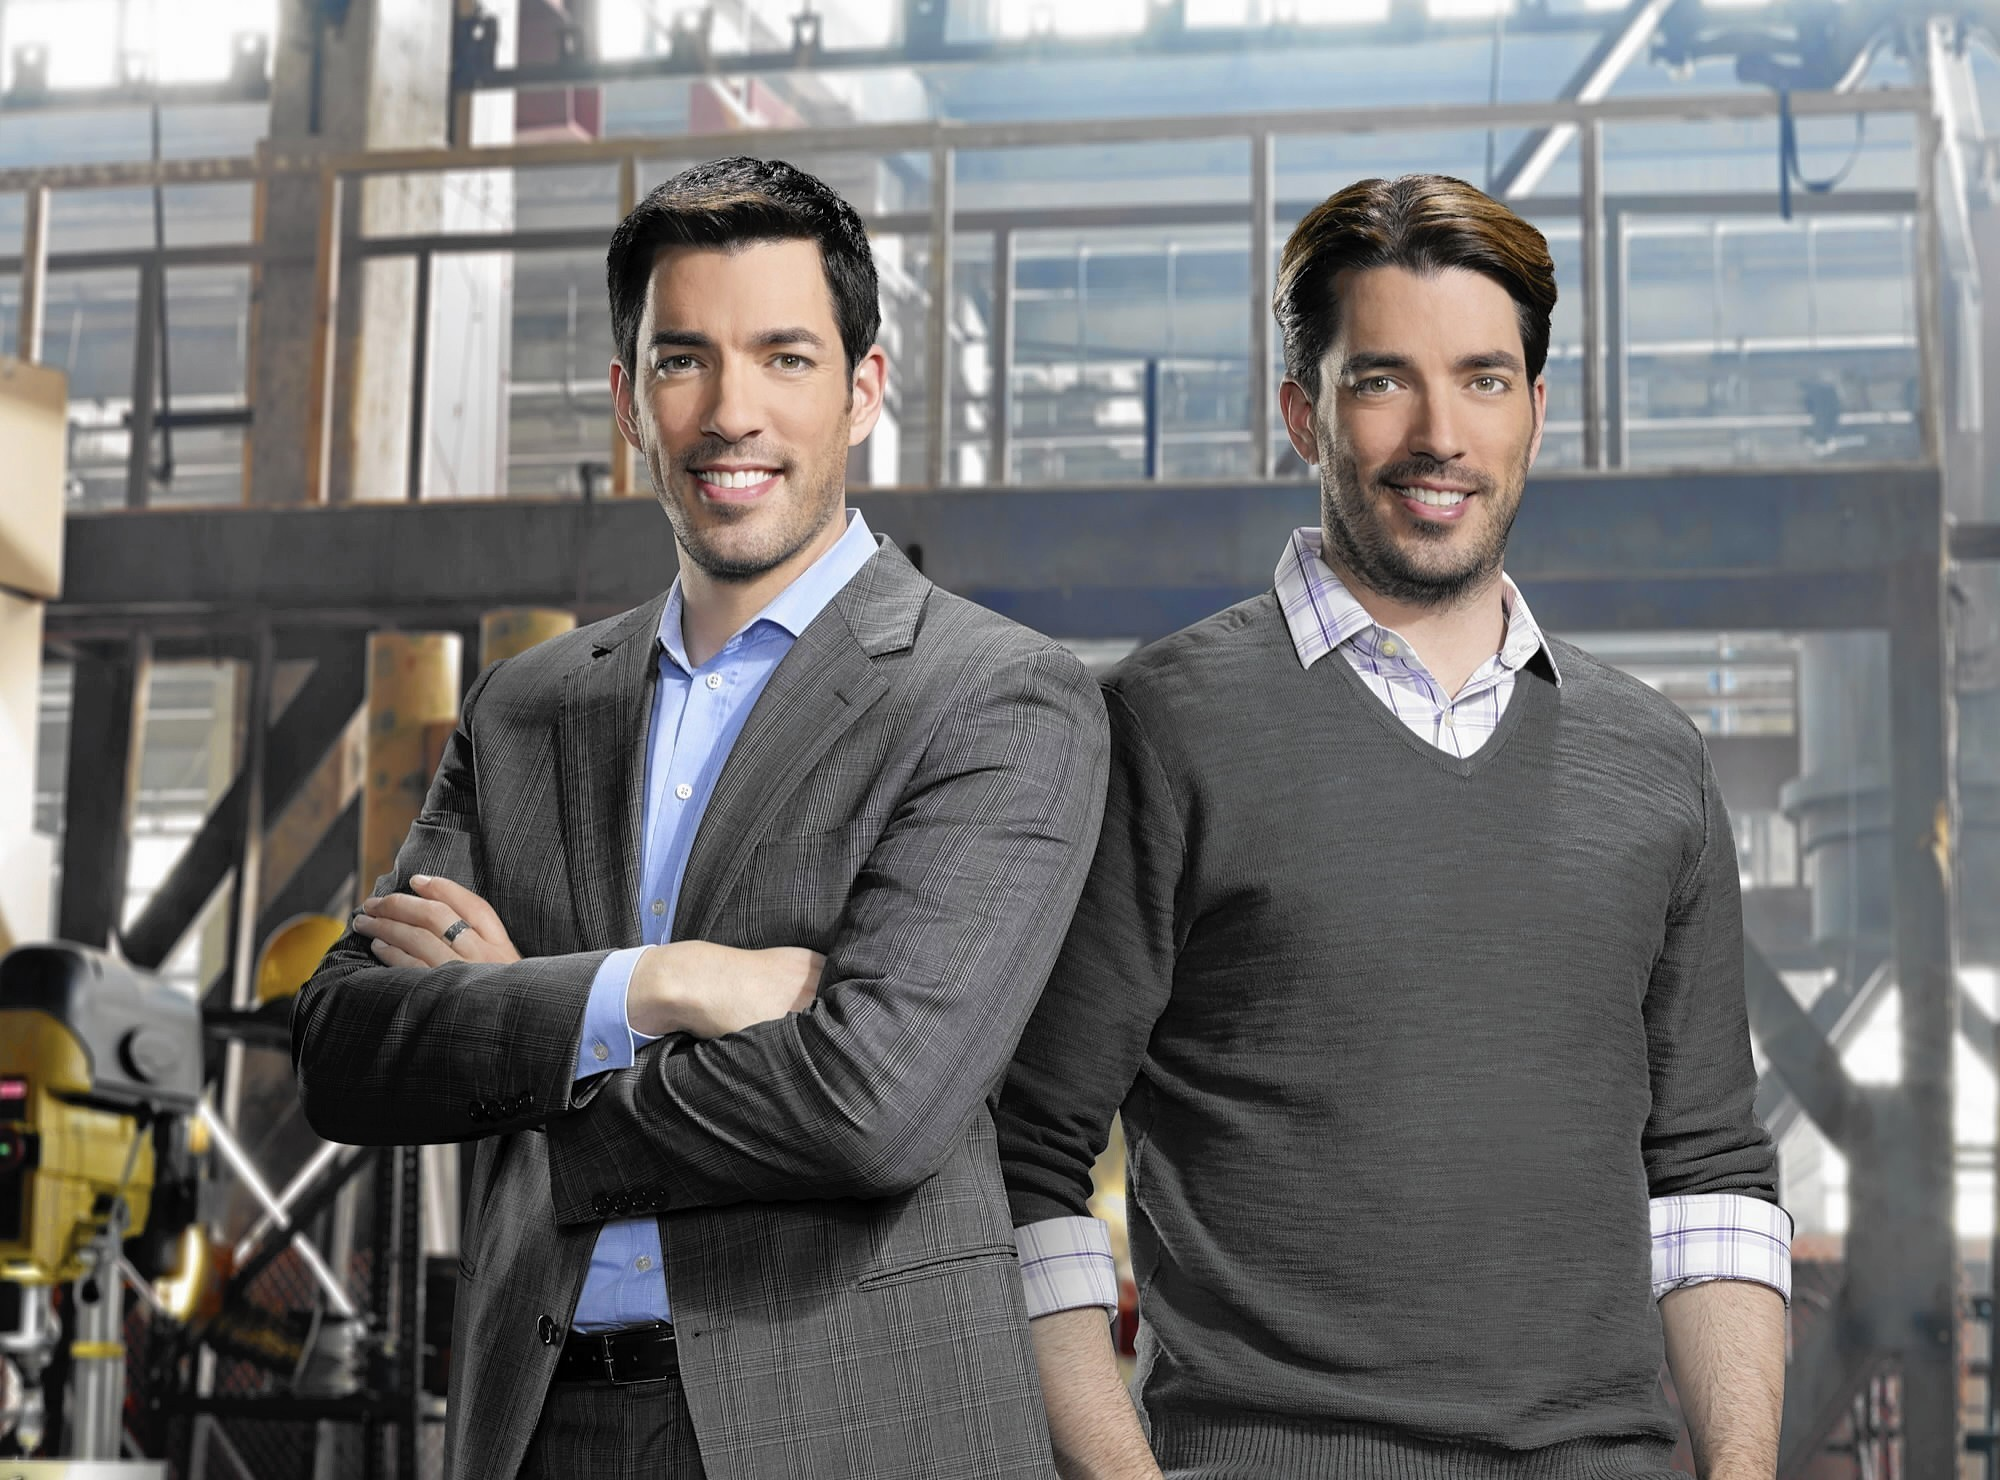 Drew Scott Of Hgtv 39 S 39 Property Brothers 39 Is An Outlet: who are the property brothers